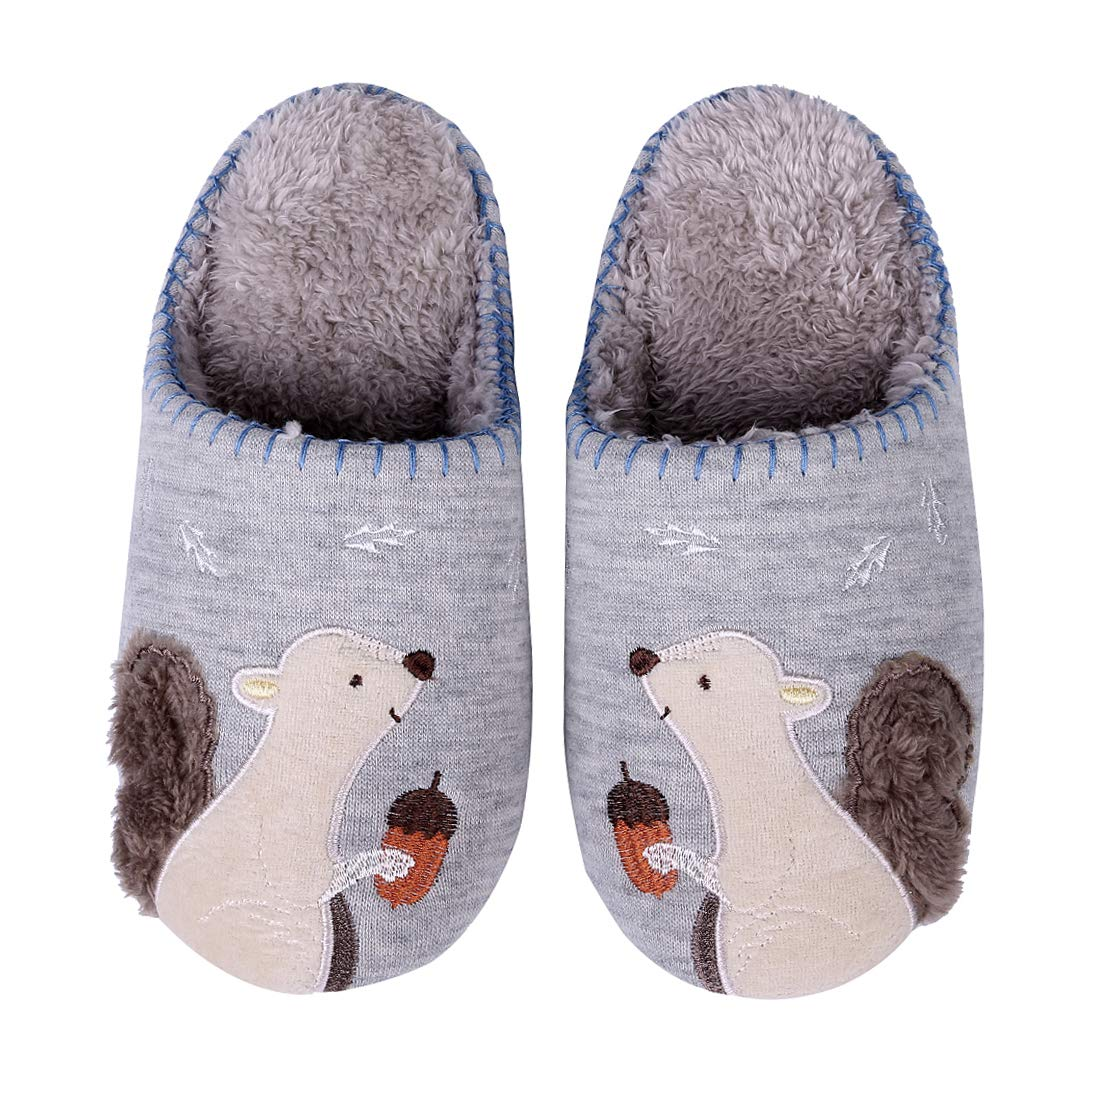 Cute Animal Home Slippers Blue Squirrel Indoor Slippers Waterproof Sole Fuzzy House Slippers for Kids 9B-M